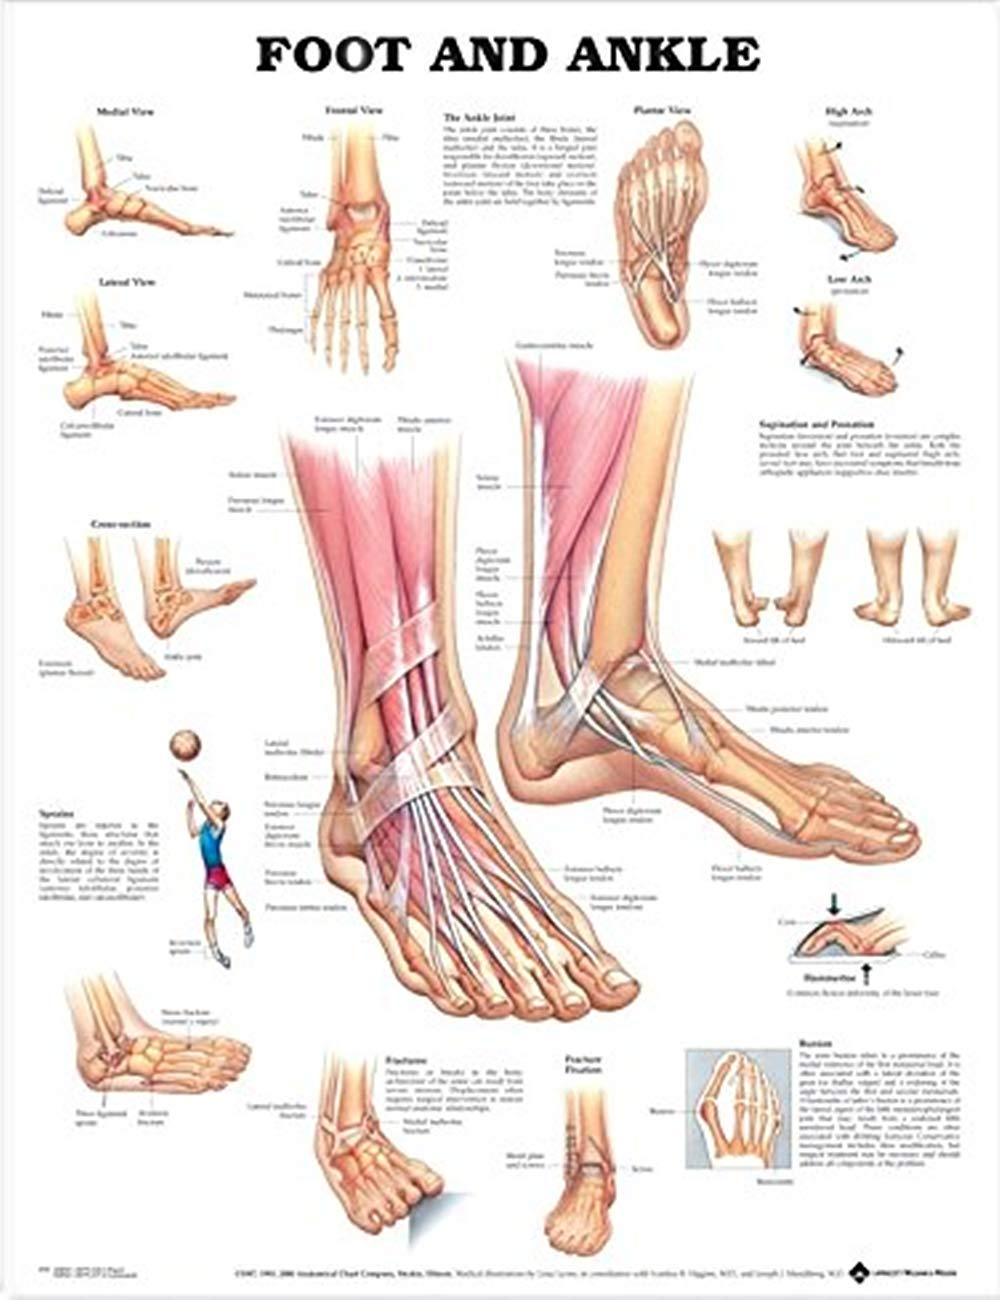 Foot And Ankle Anatomical Poster Human Physiology Chart Of Foot And